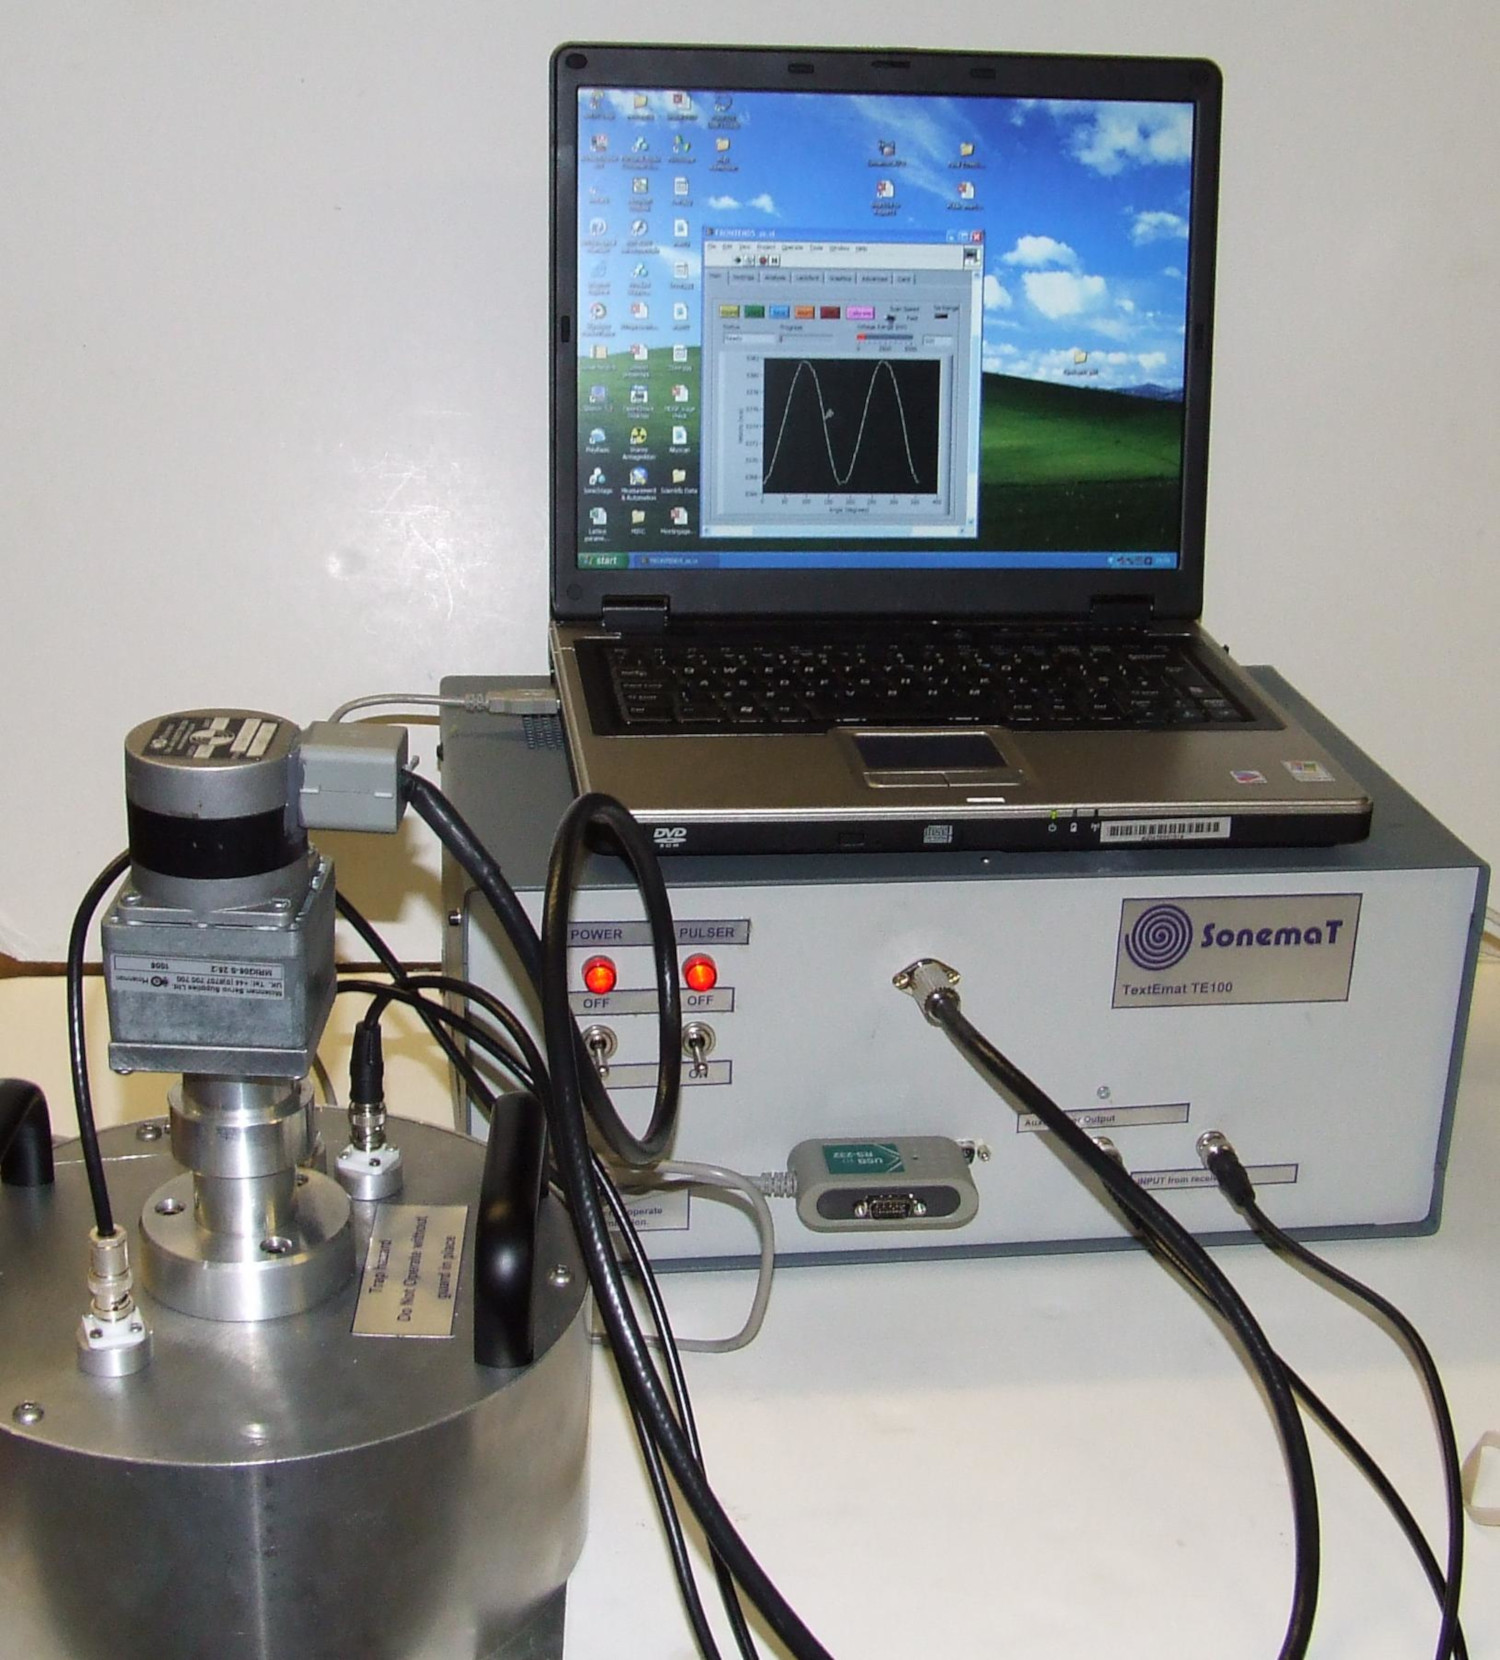 Ultrasonic texture measurement system in our labs. The whole system can easily be transported by car